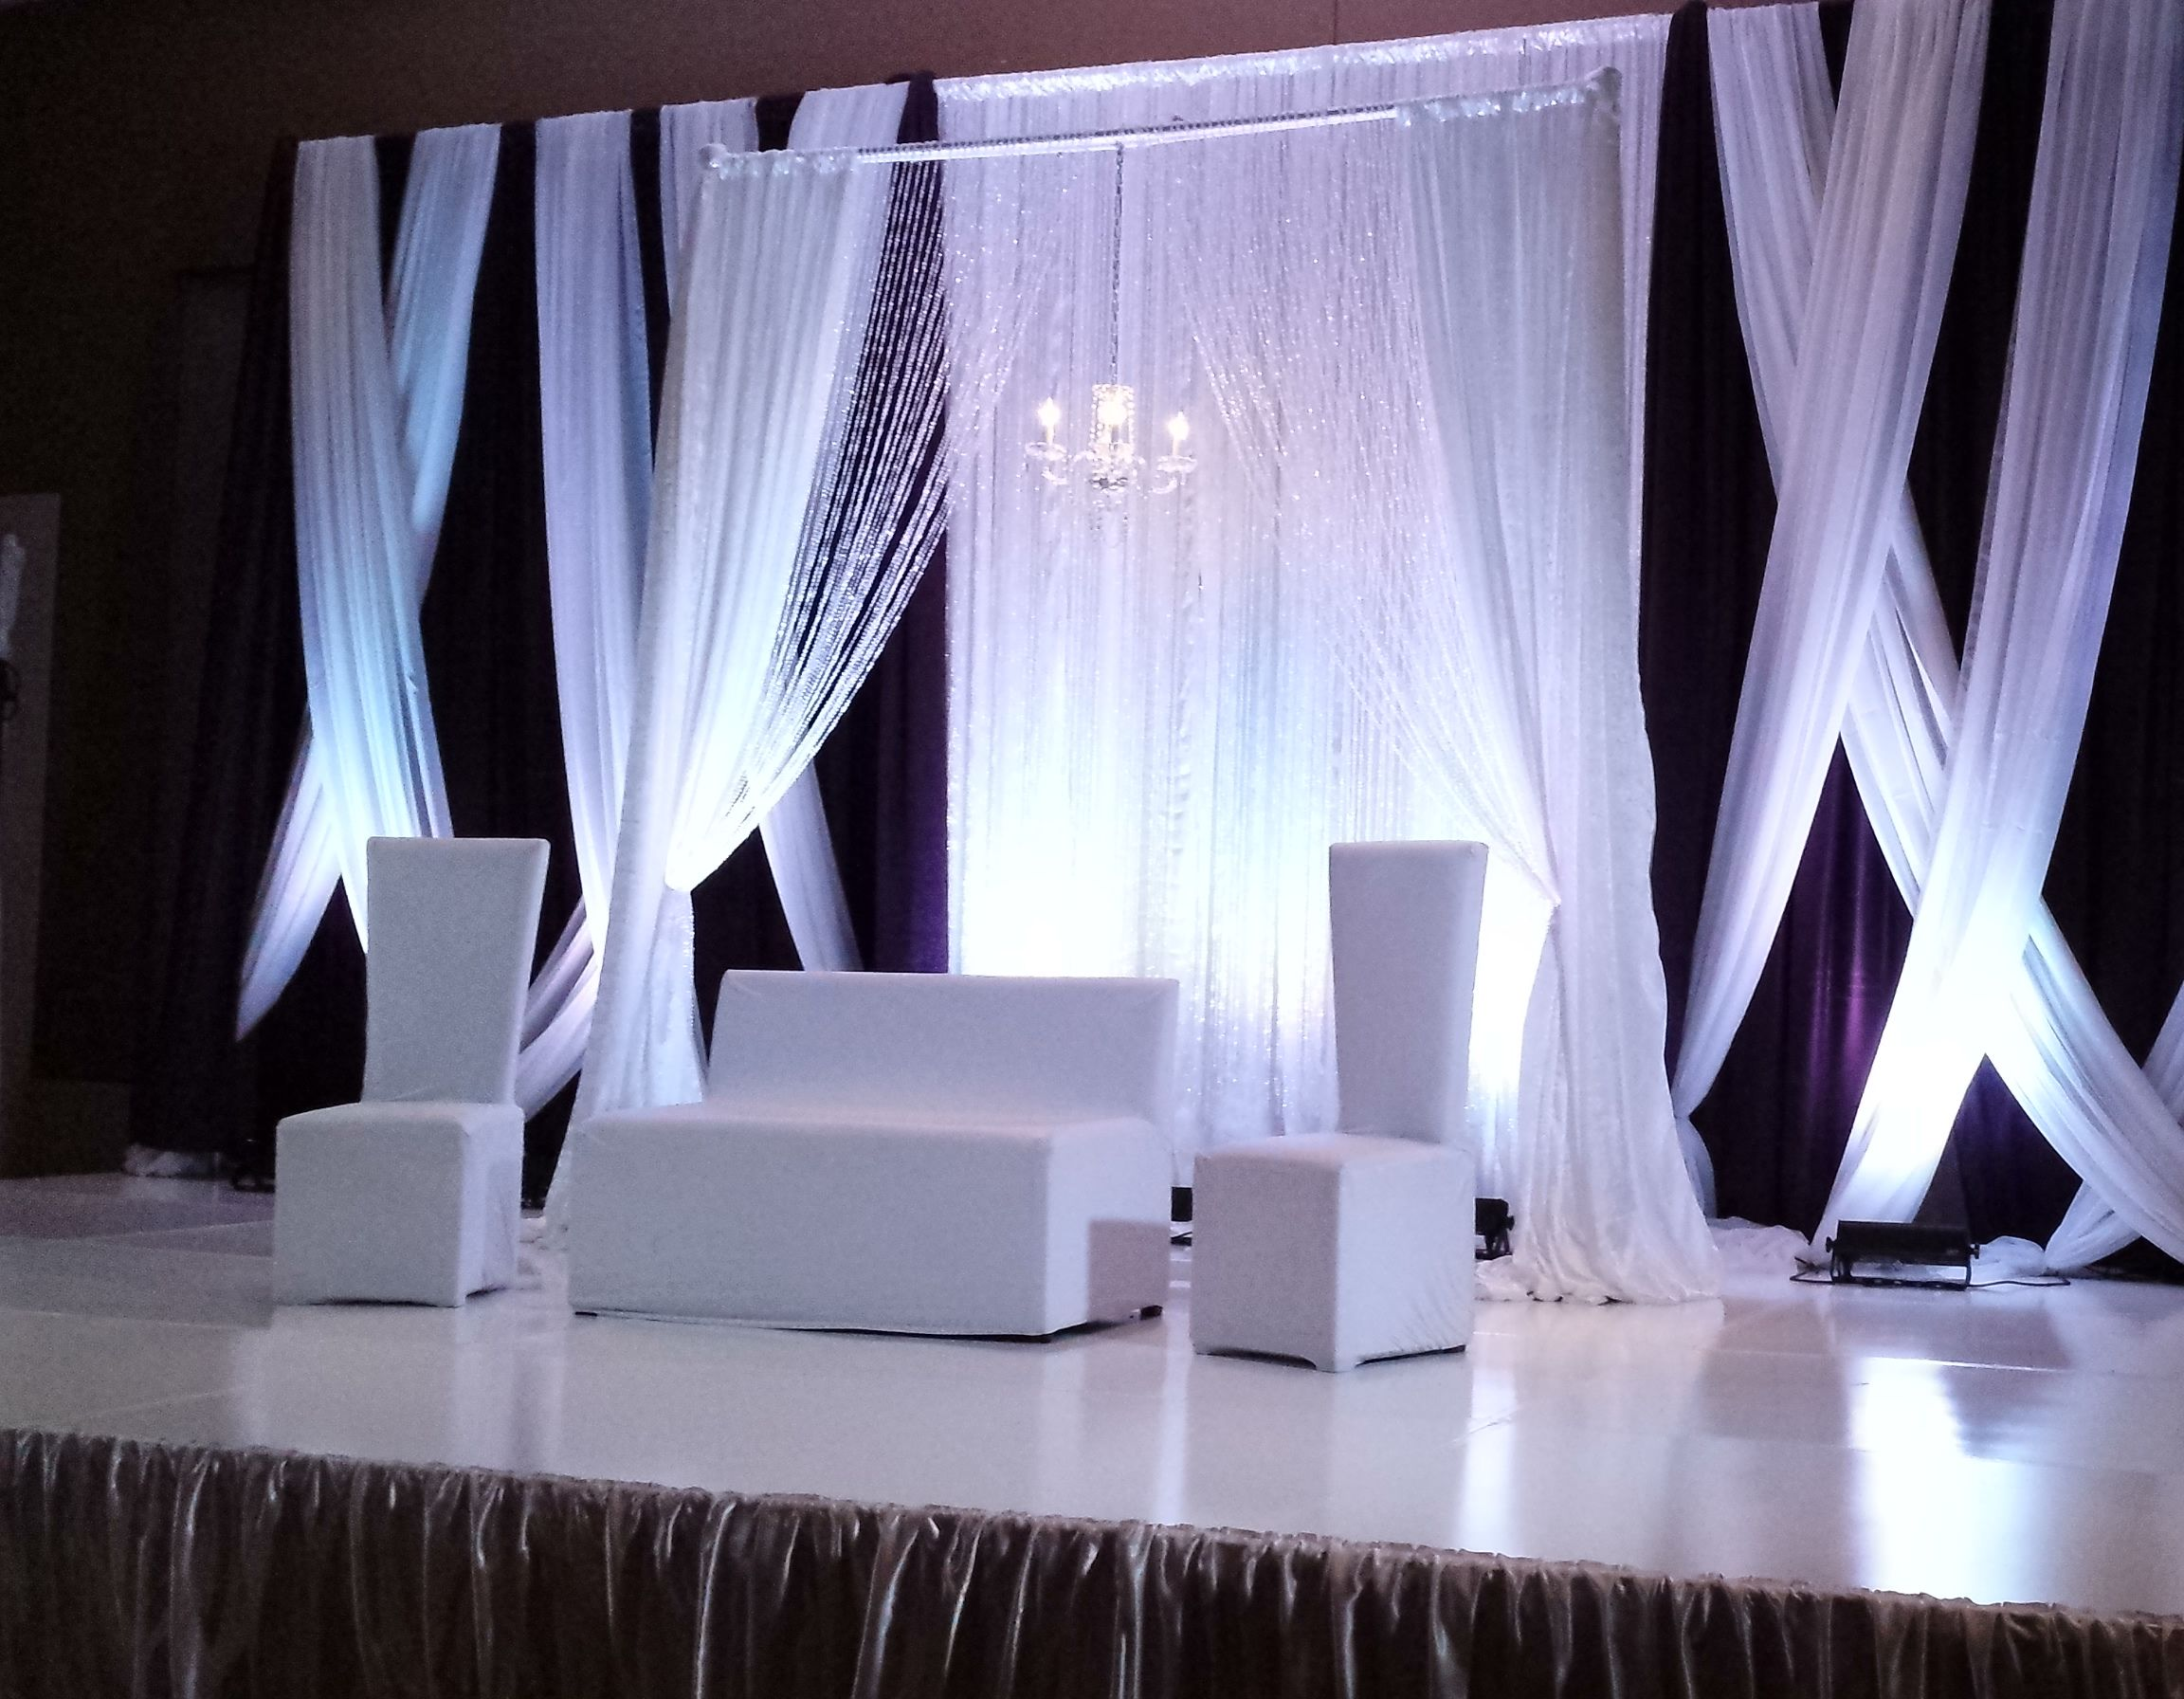 Plum curtains - White Plum Backdrop With White Criss Cross Crystal Curtains And Hanging Chandelier White Lounge